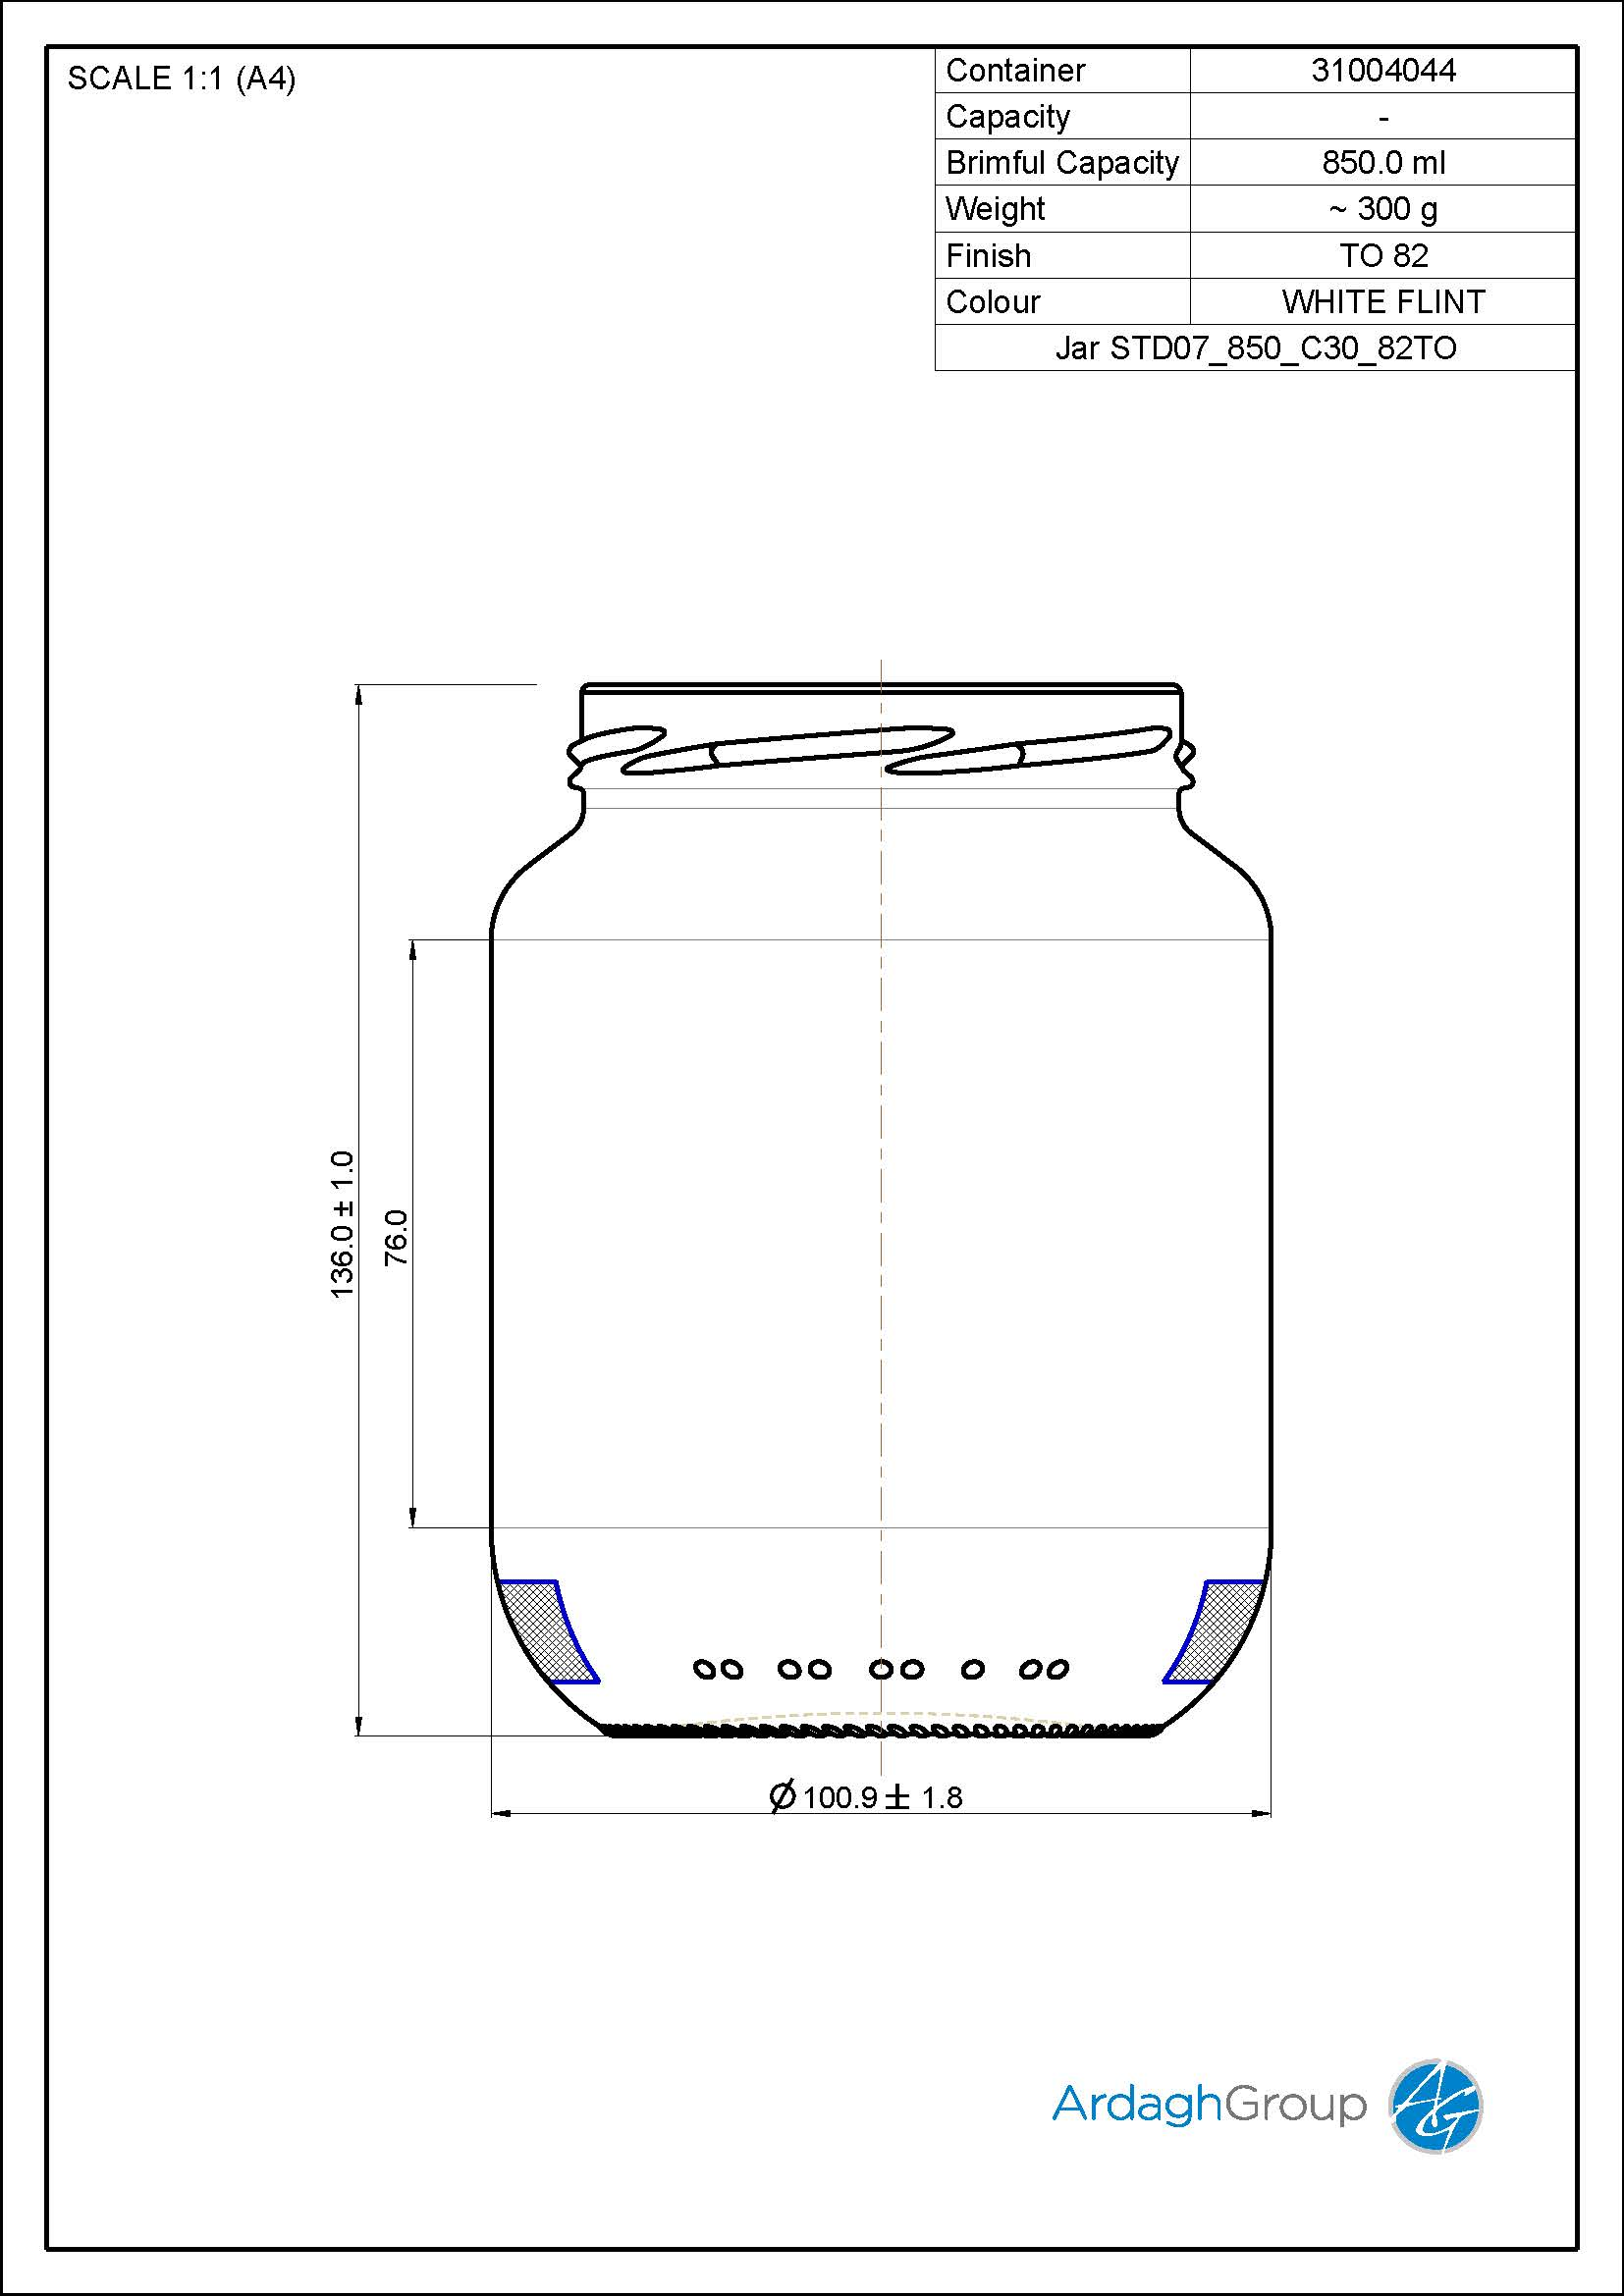 Jar STD07 850 C30 82TO